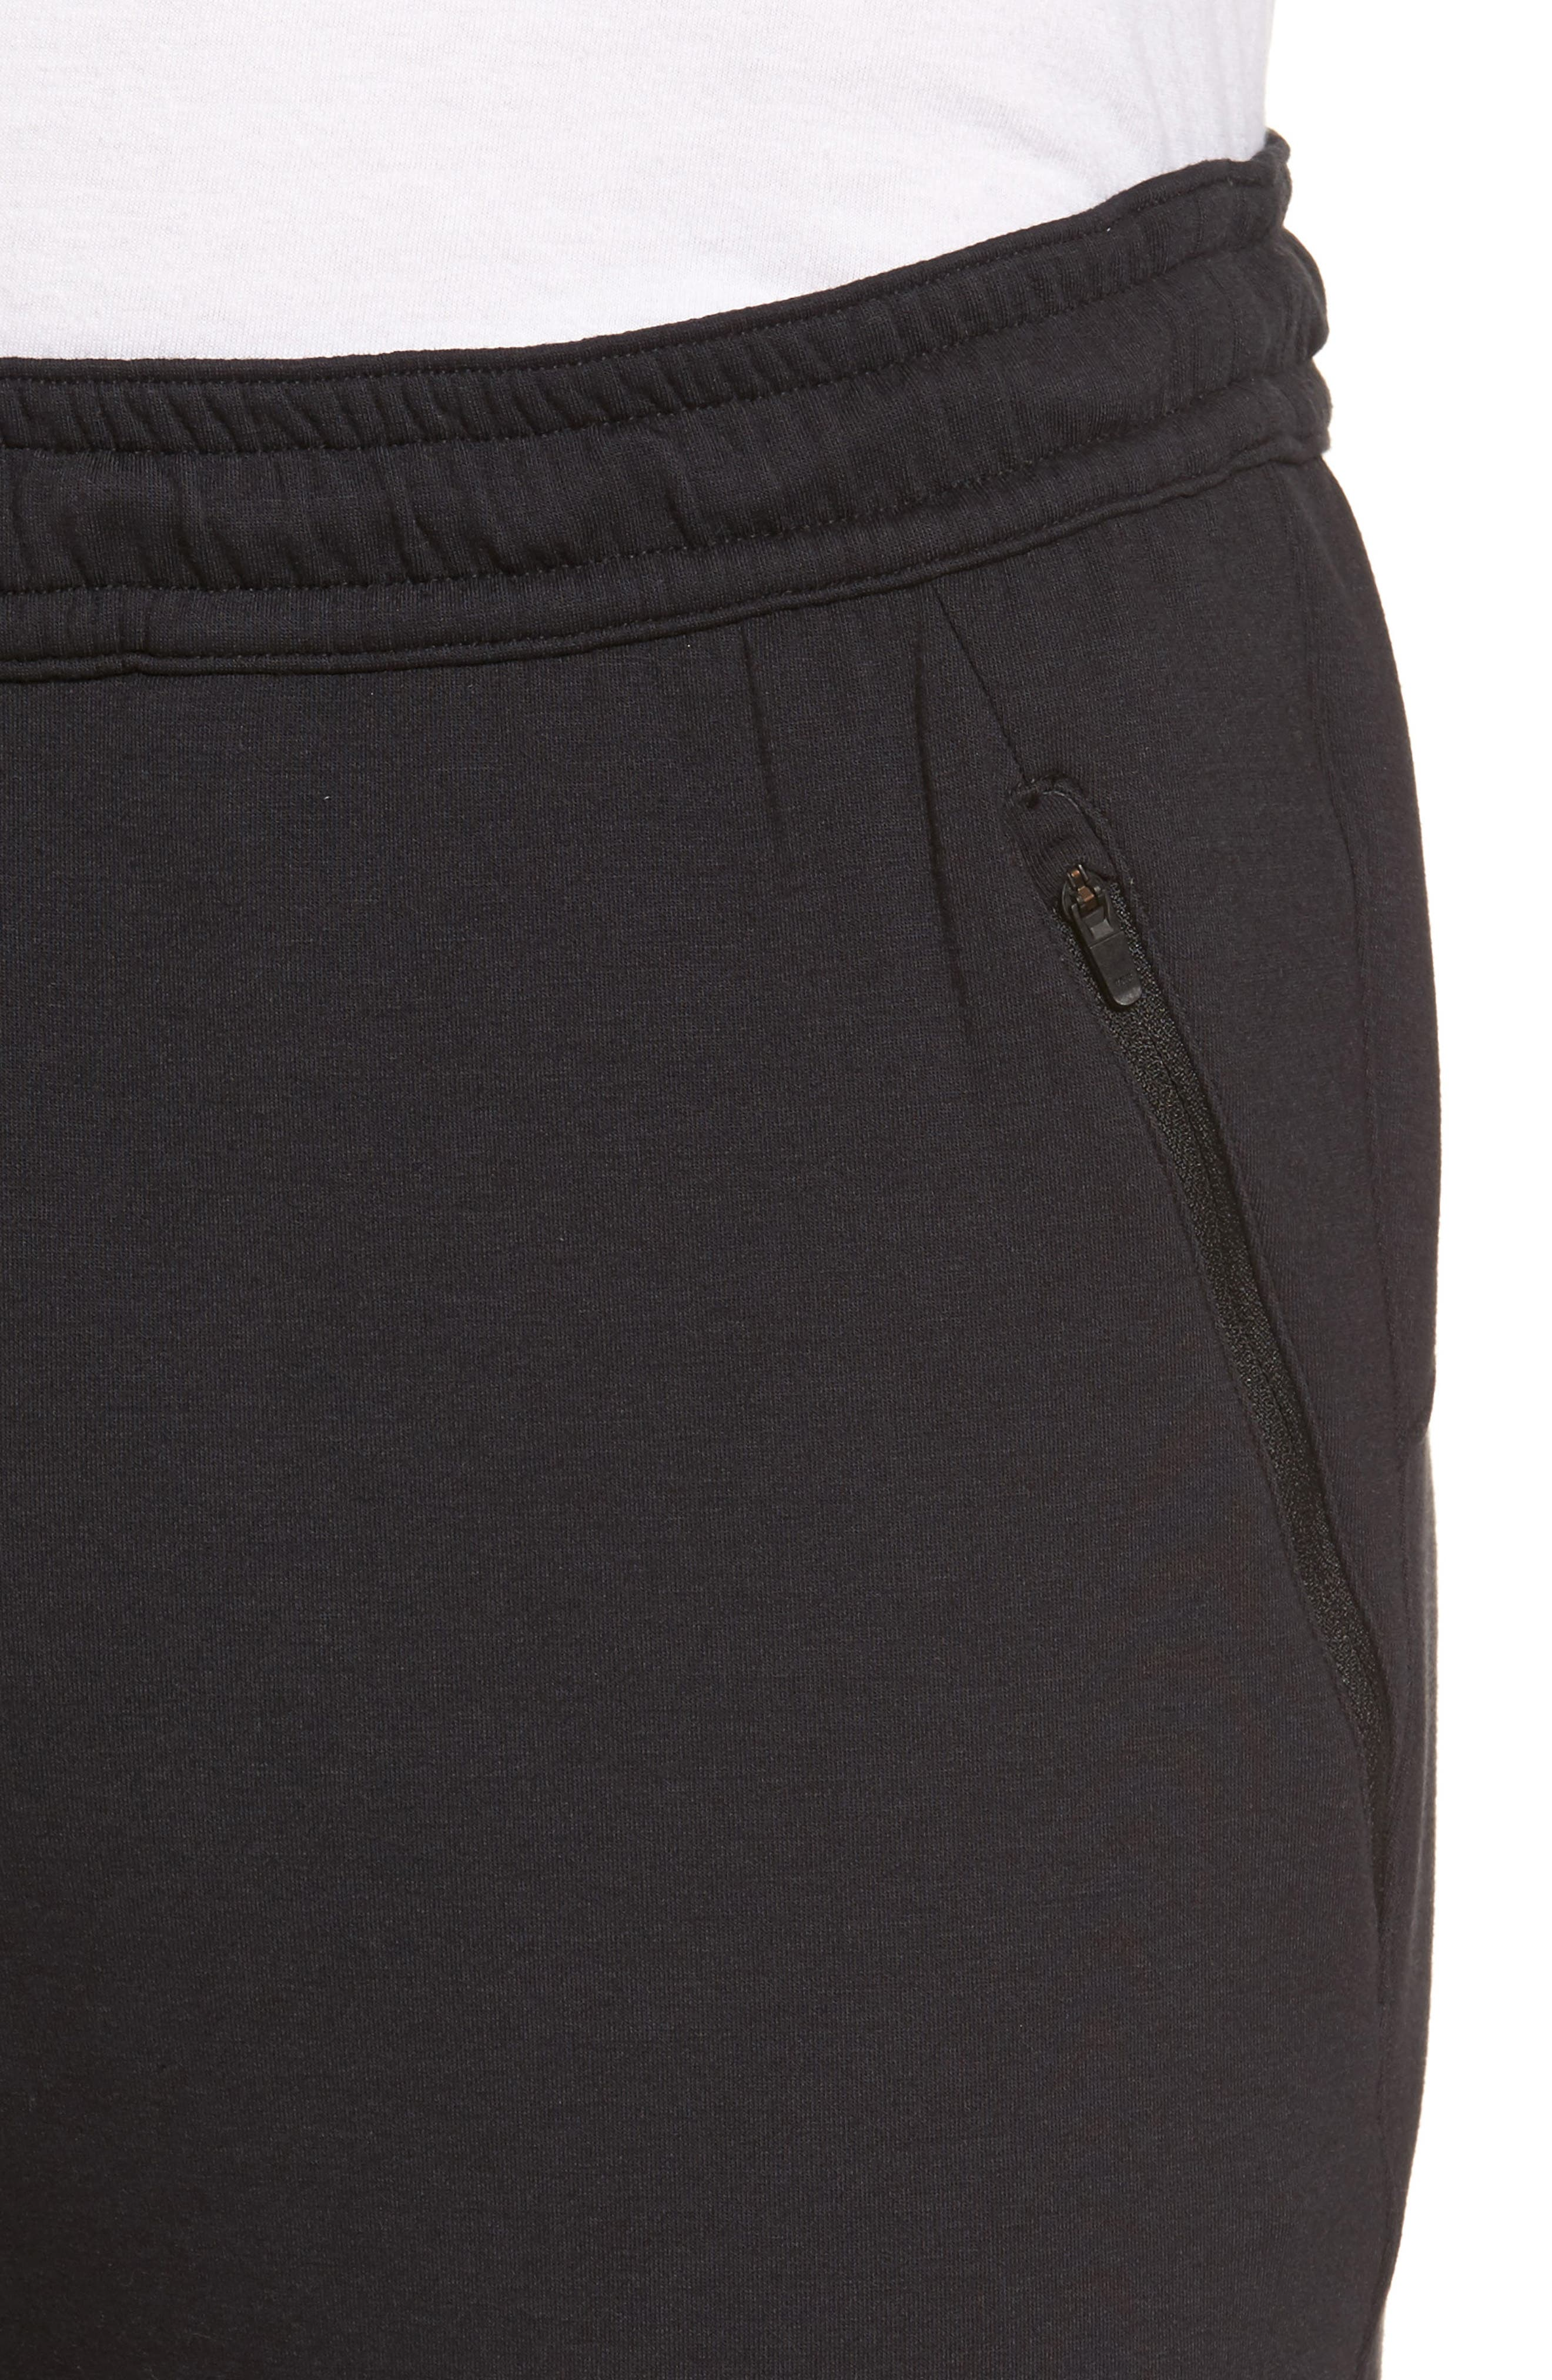 Alternate Image 3  - Zella Tech Interlock Knit Pant